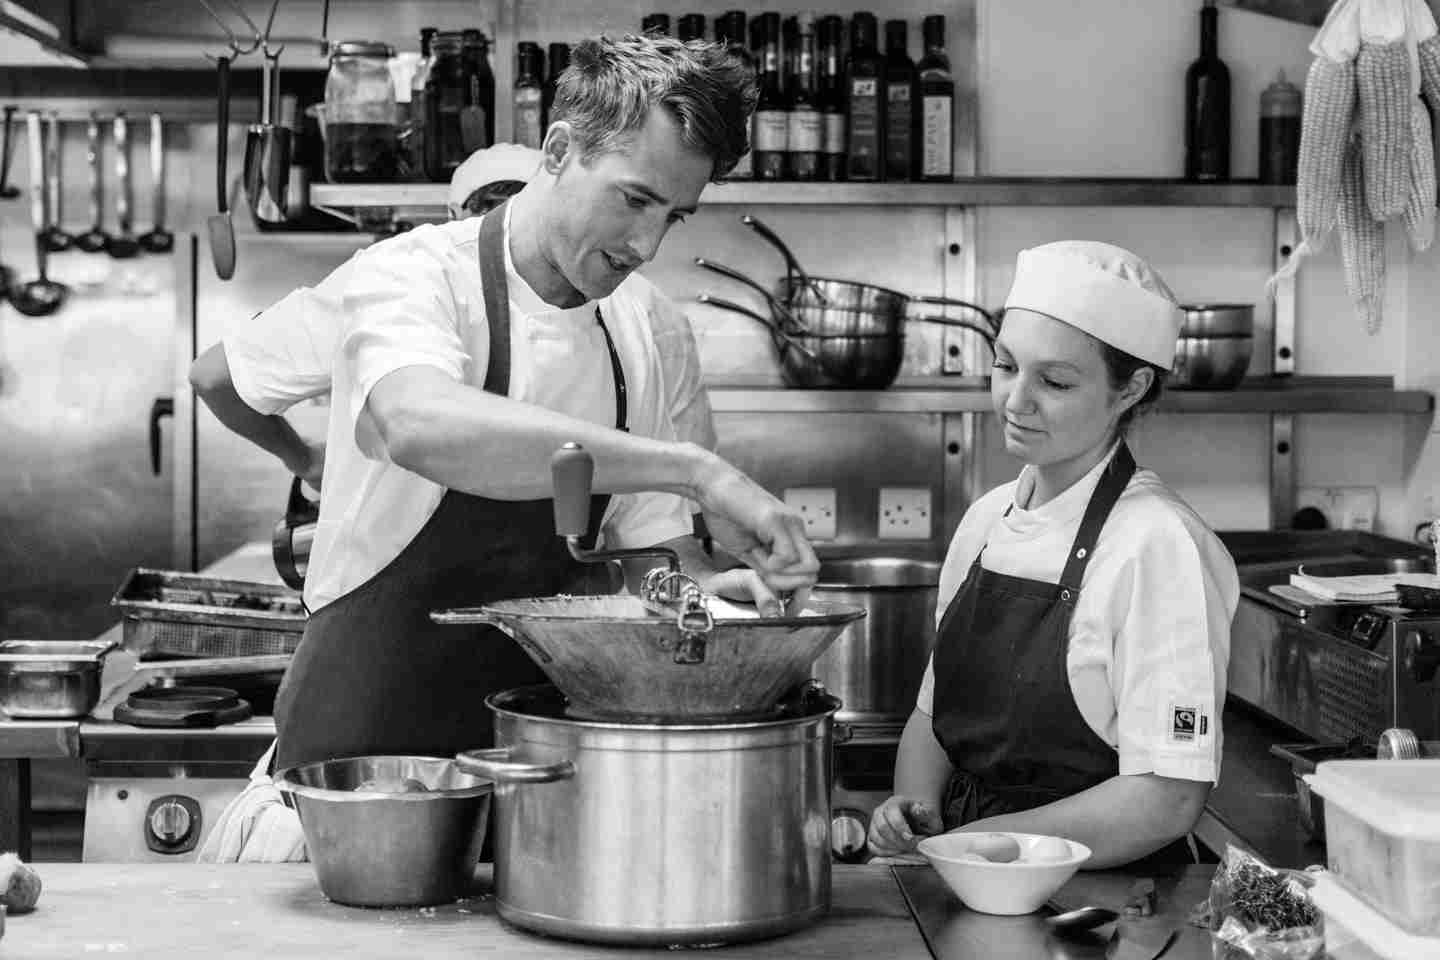 Fifteen Cornwall Apprentice Chef